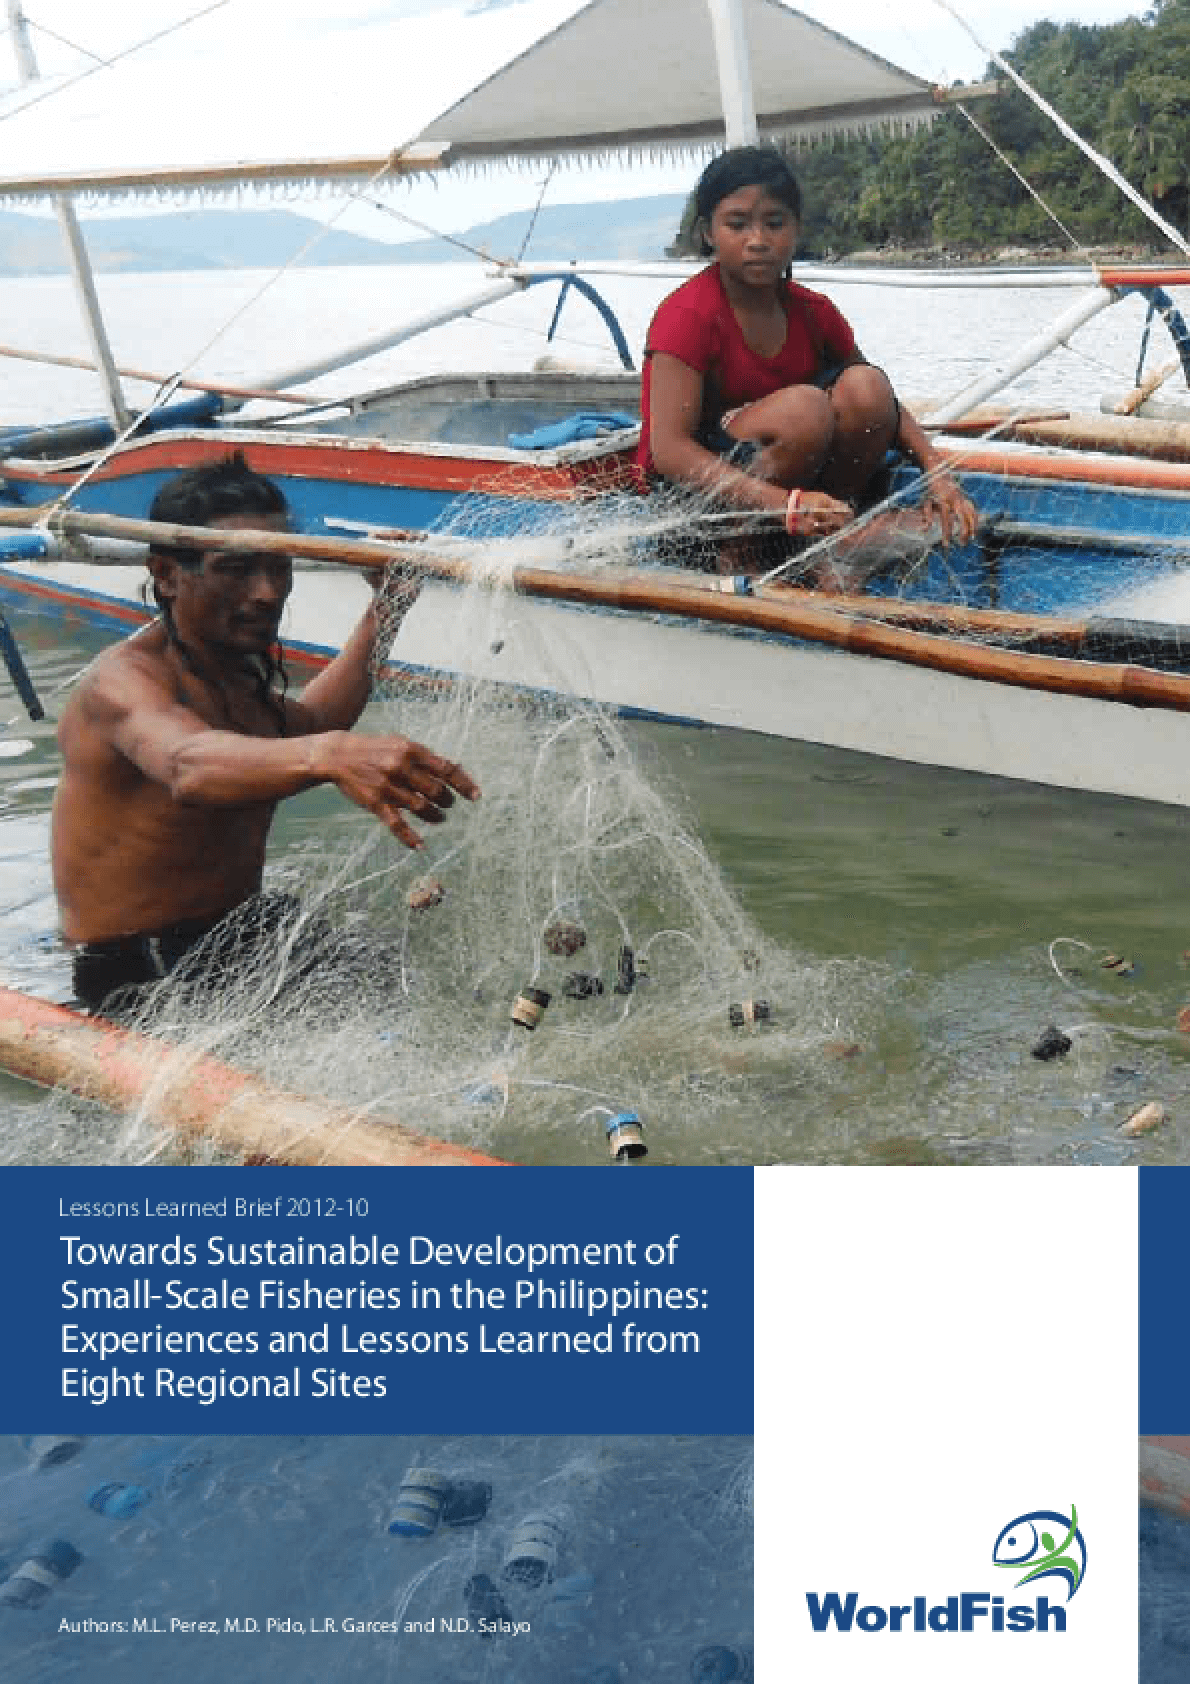 Towards Sustainable Development of Small-Scale Fisheries in the Philippines: Experiences and Lessons Learned from Eight Regional Sites